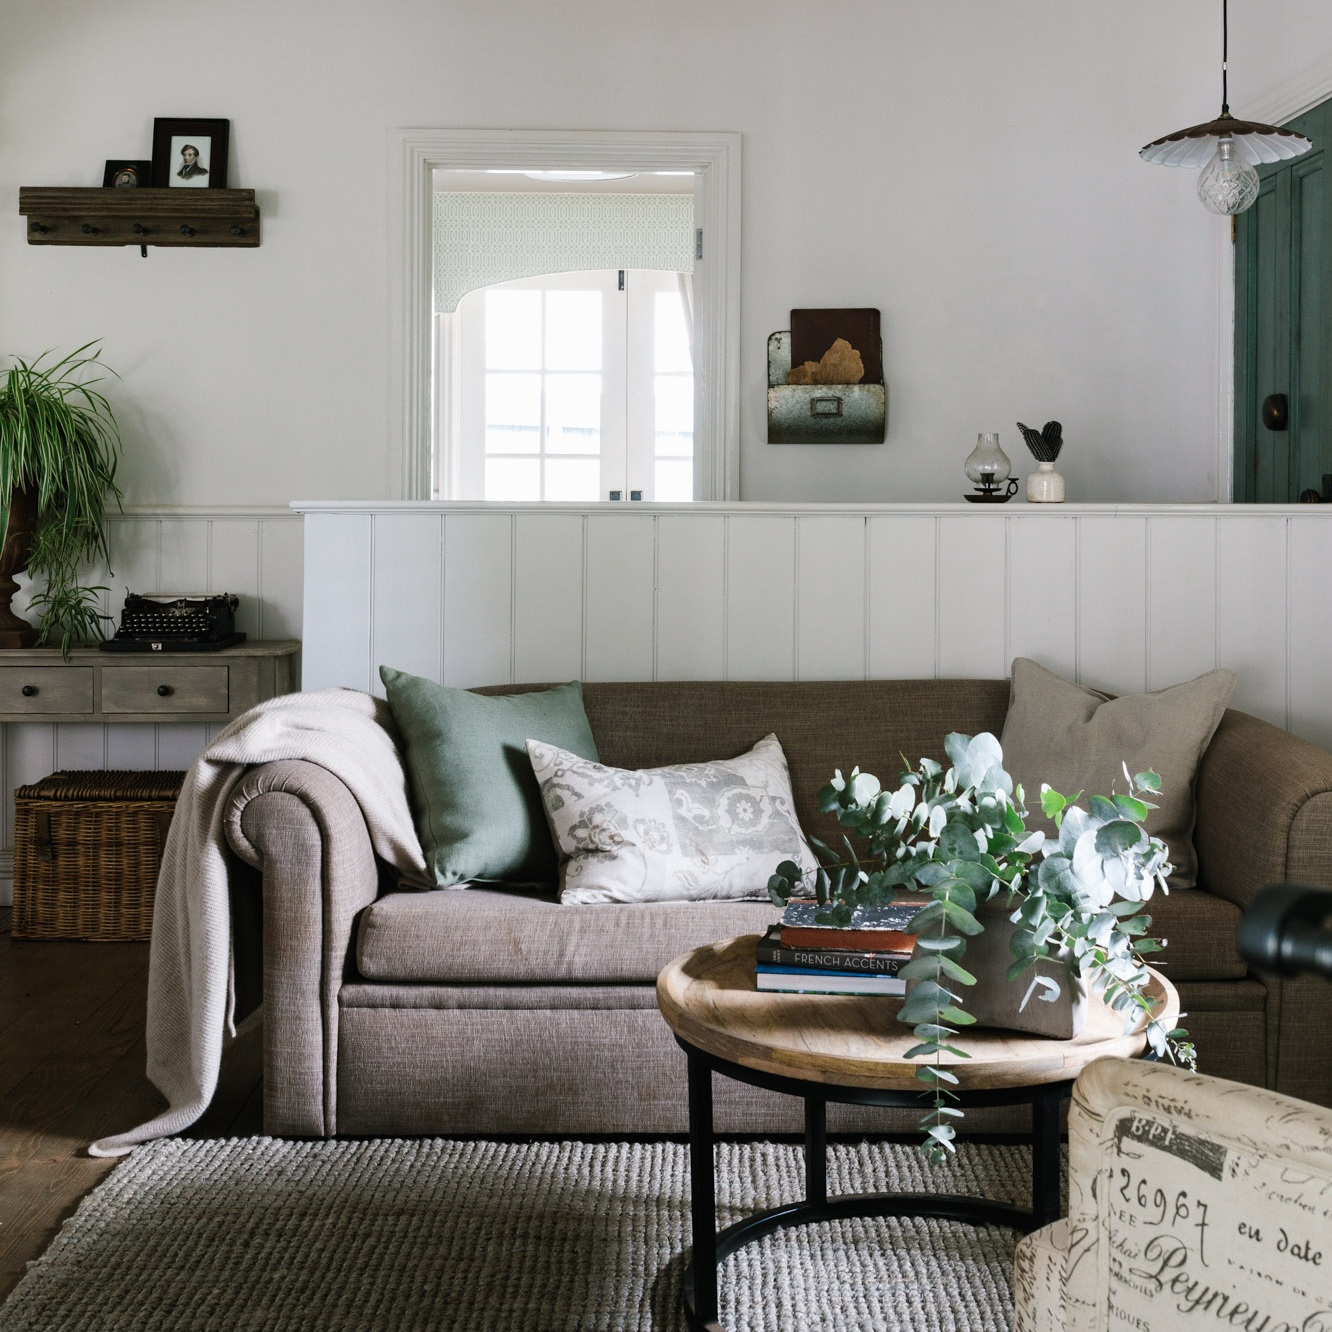 Acre+of+Roses_interiors_low+res-26.jpg